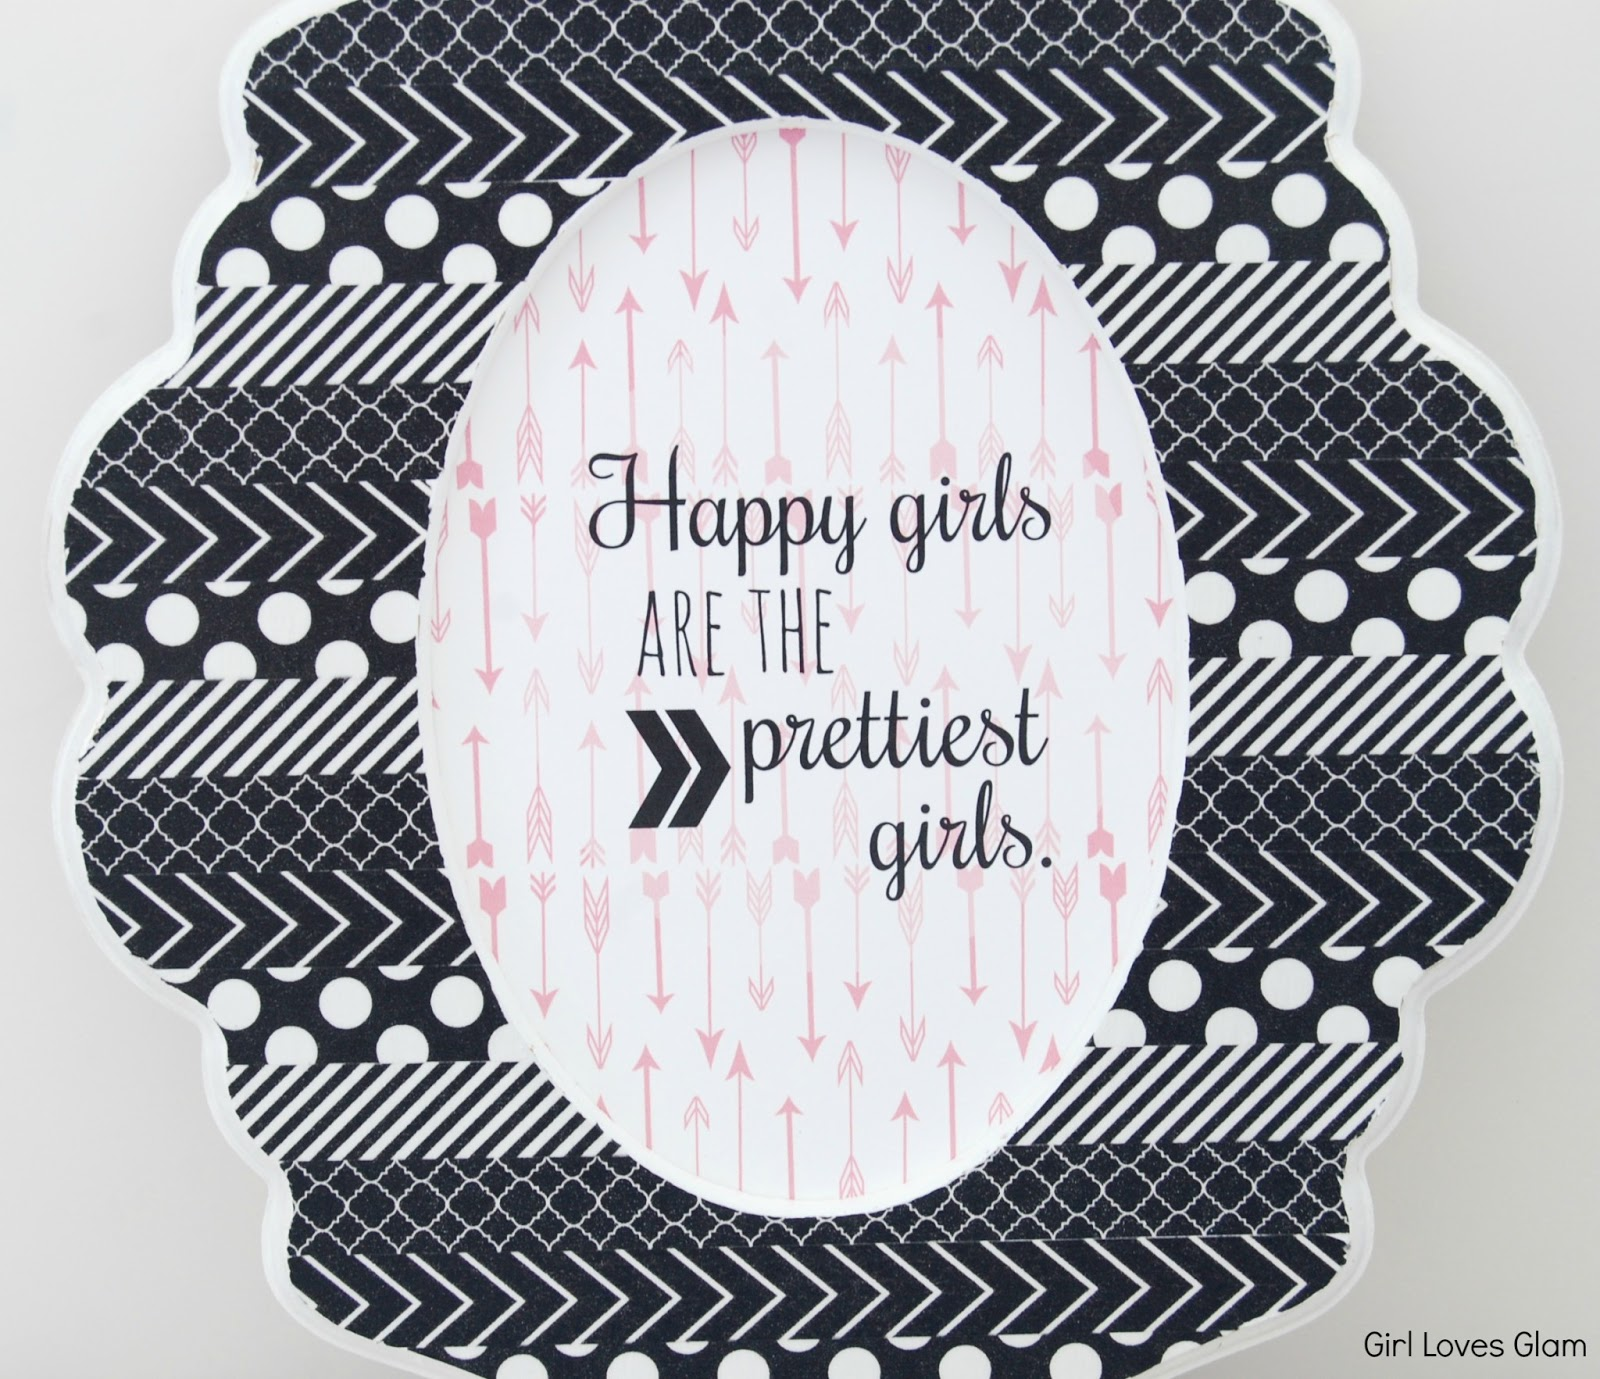 Love Quote Picture Frames Diy Washi Tape Curvy Oval Frame And Audrey Hepburn Free Printable